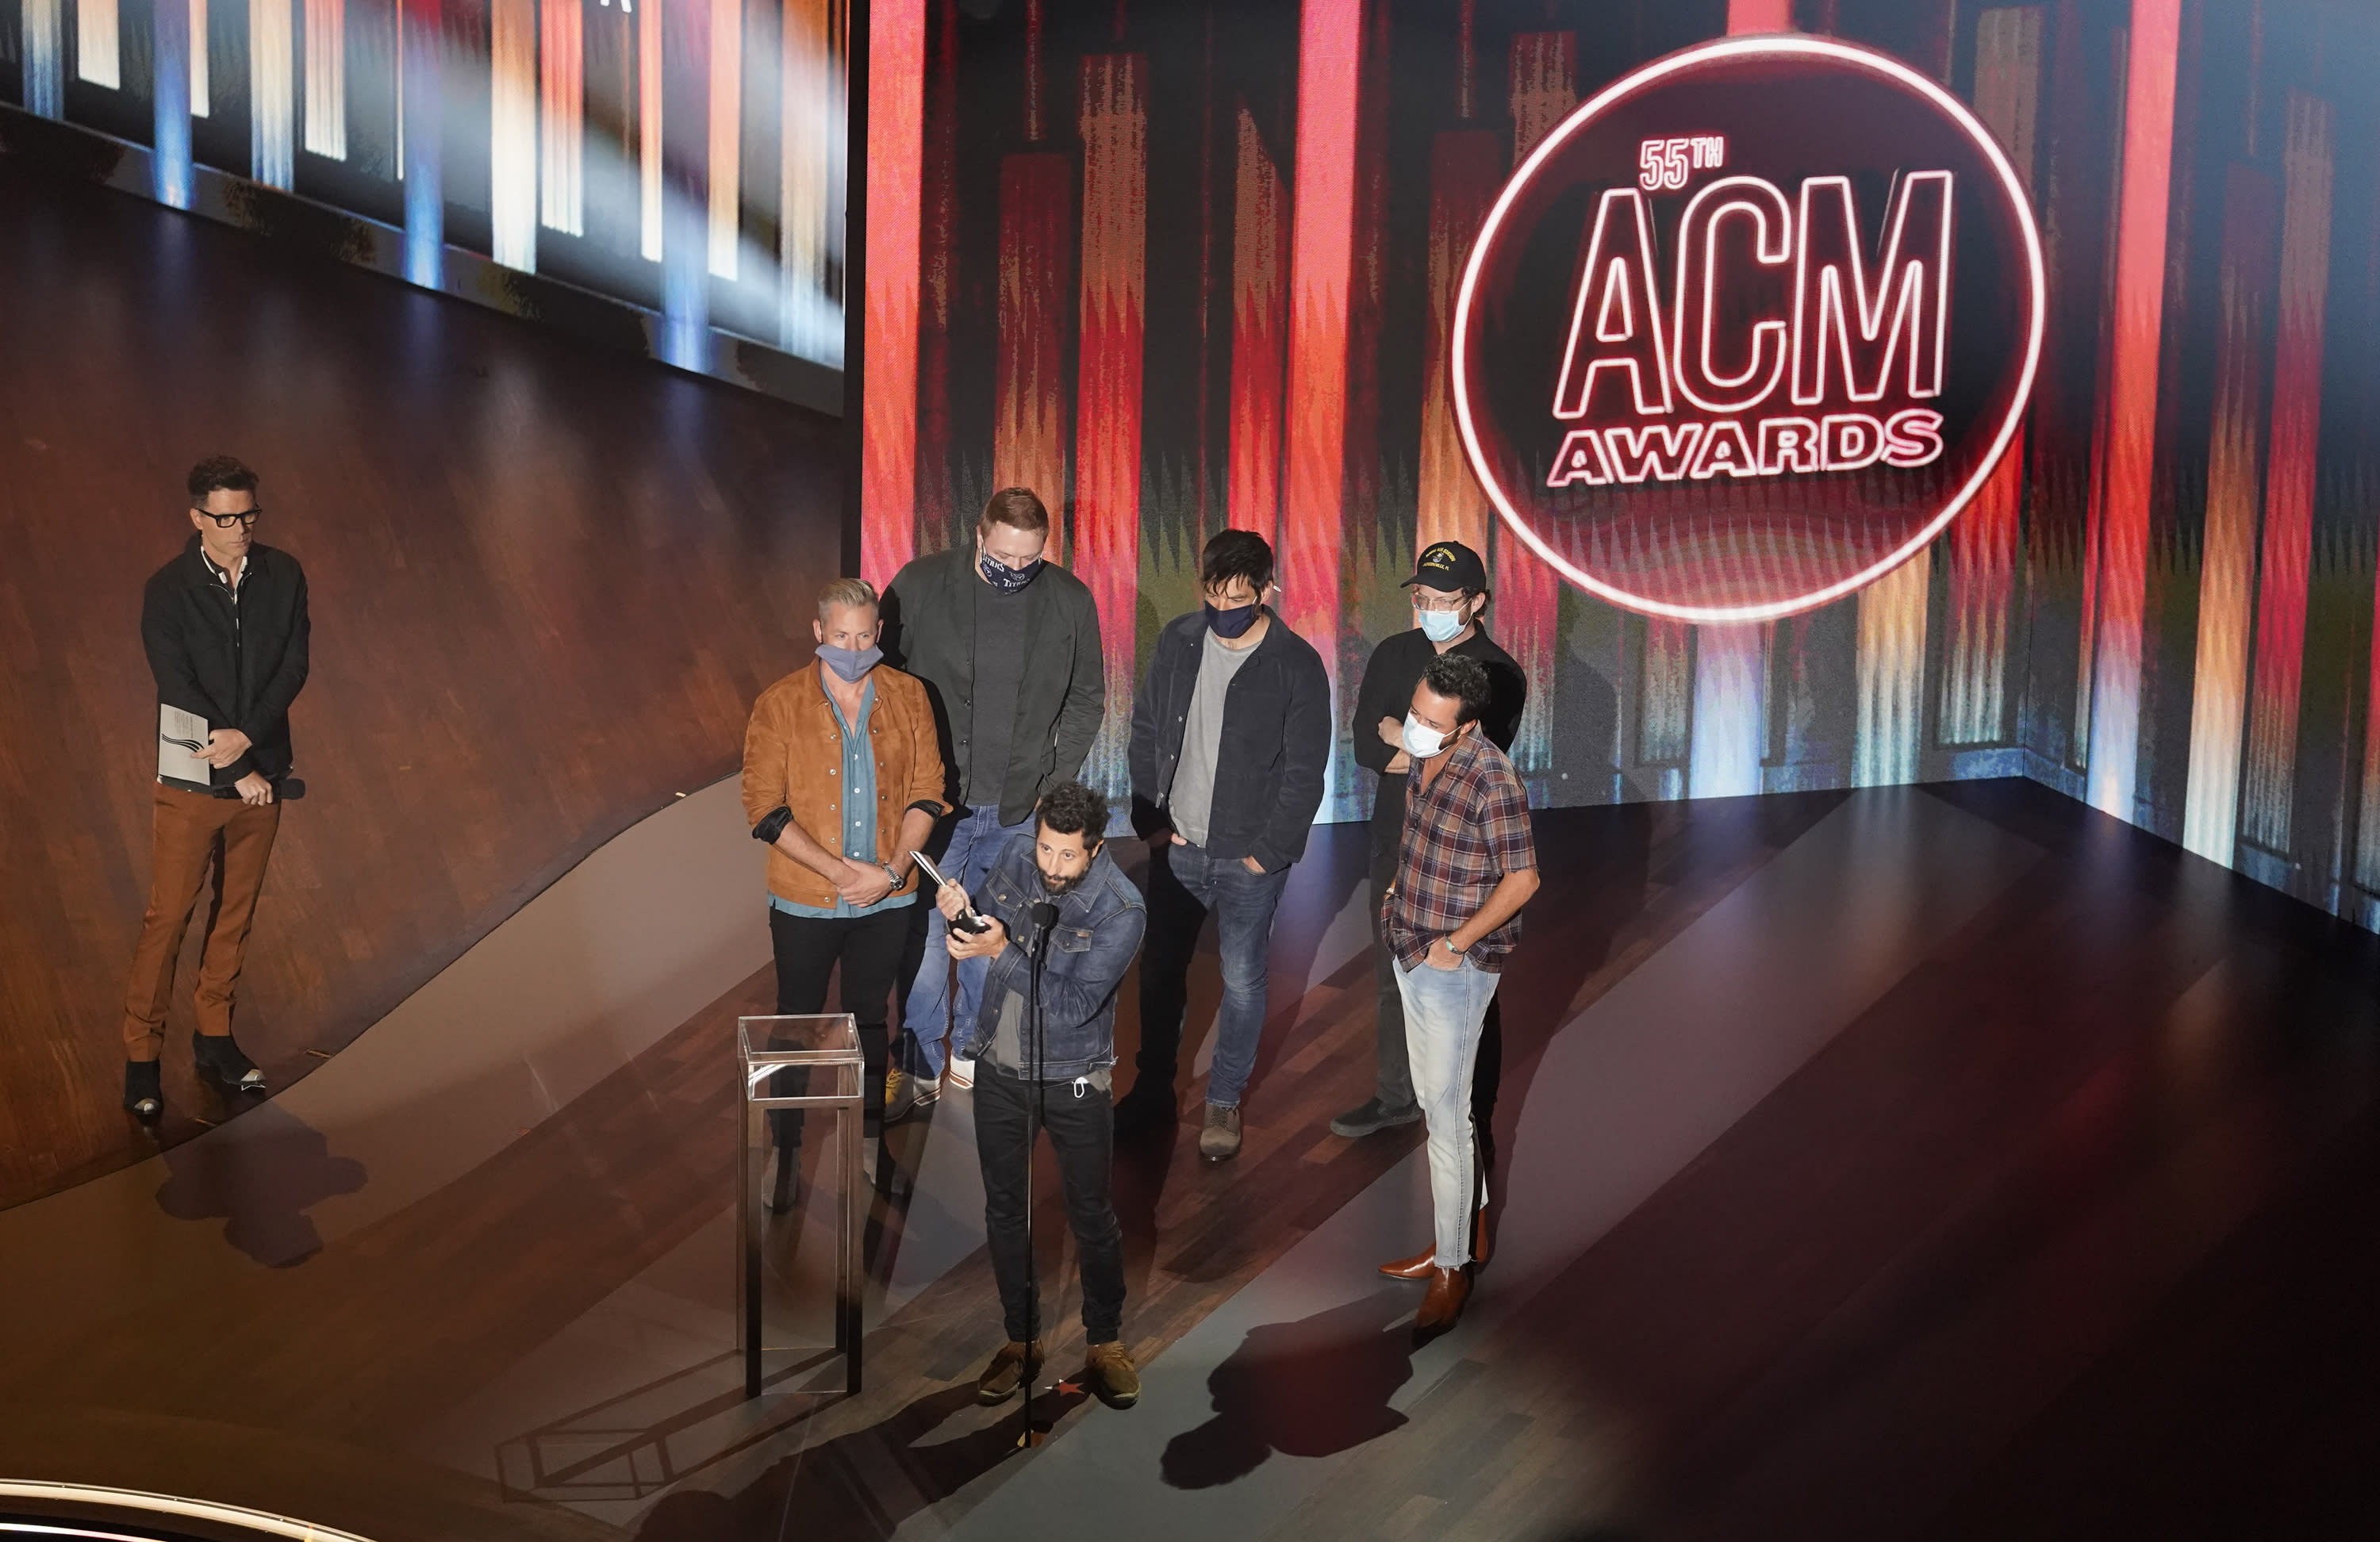 """Old Dominion accepts the song of the year award for """"One Man Band"""" as presenter Bobby Bones, left, looks on during the 55th annual Academy of Country Music Awards at the Grand Ole Opry House on Wednesday, Sept. 16, 2020, in Nashville, Tenn. (AP Photo/Mark Humphrey)"""